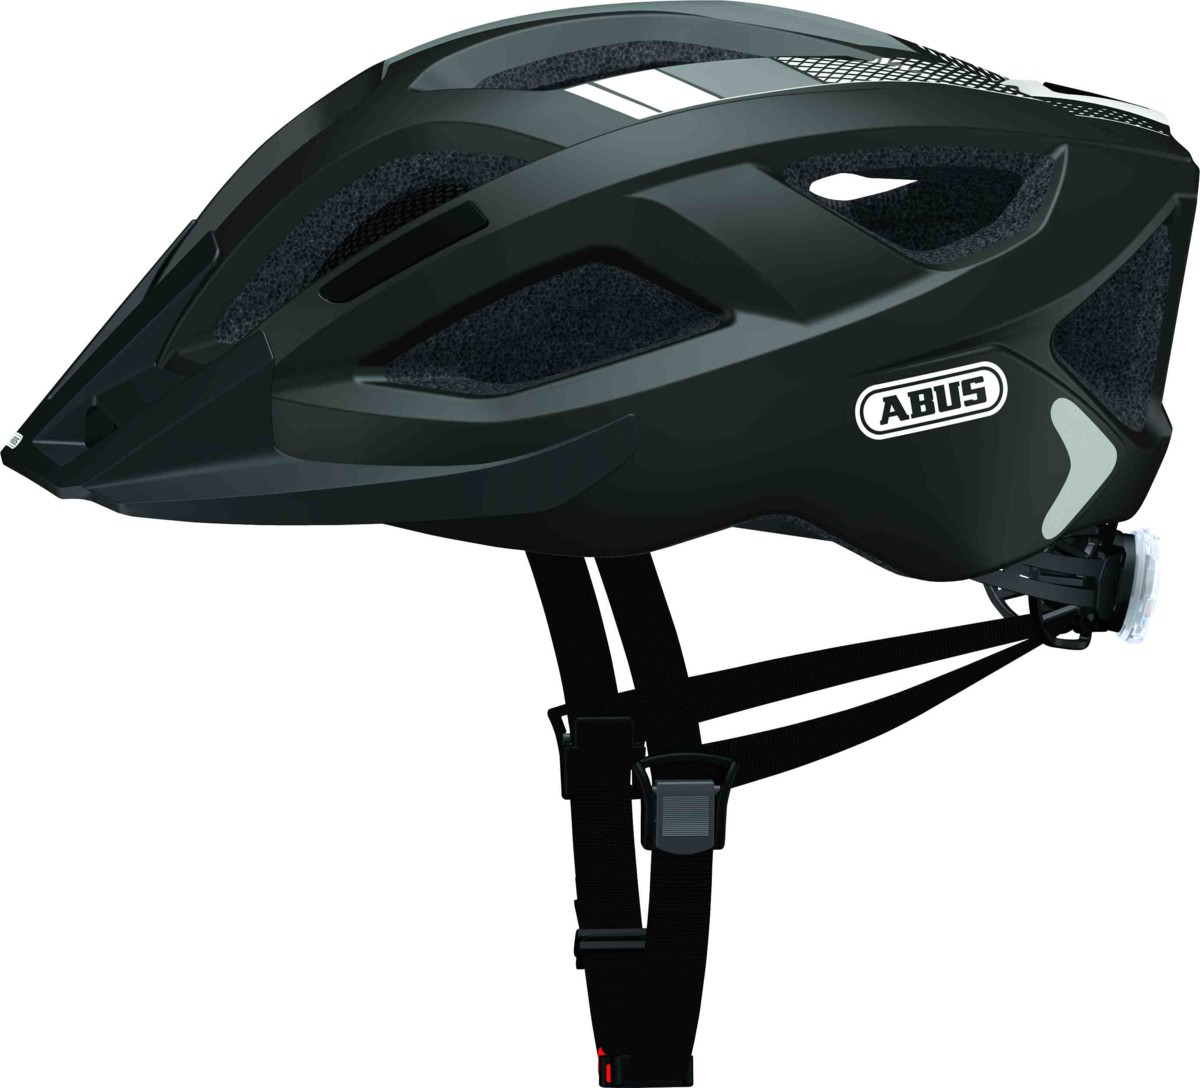 Aduro 2.0 race black - Aduro 2.0 race black L